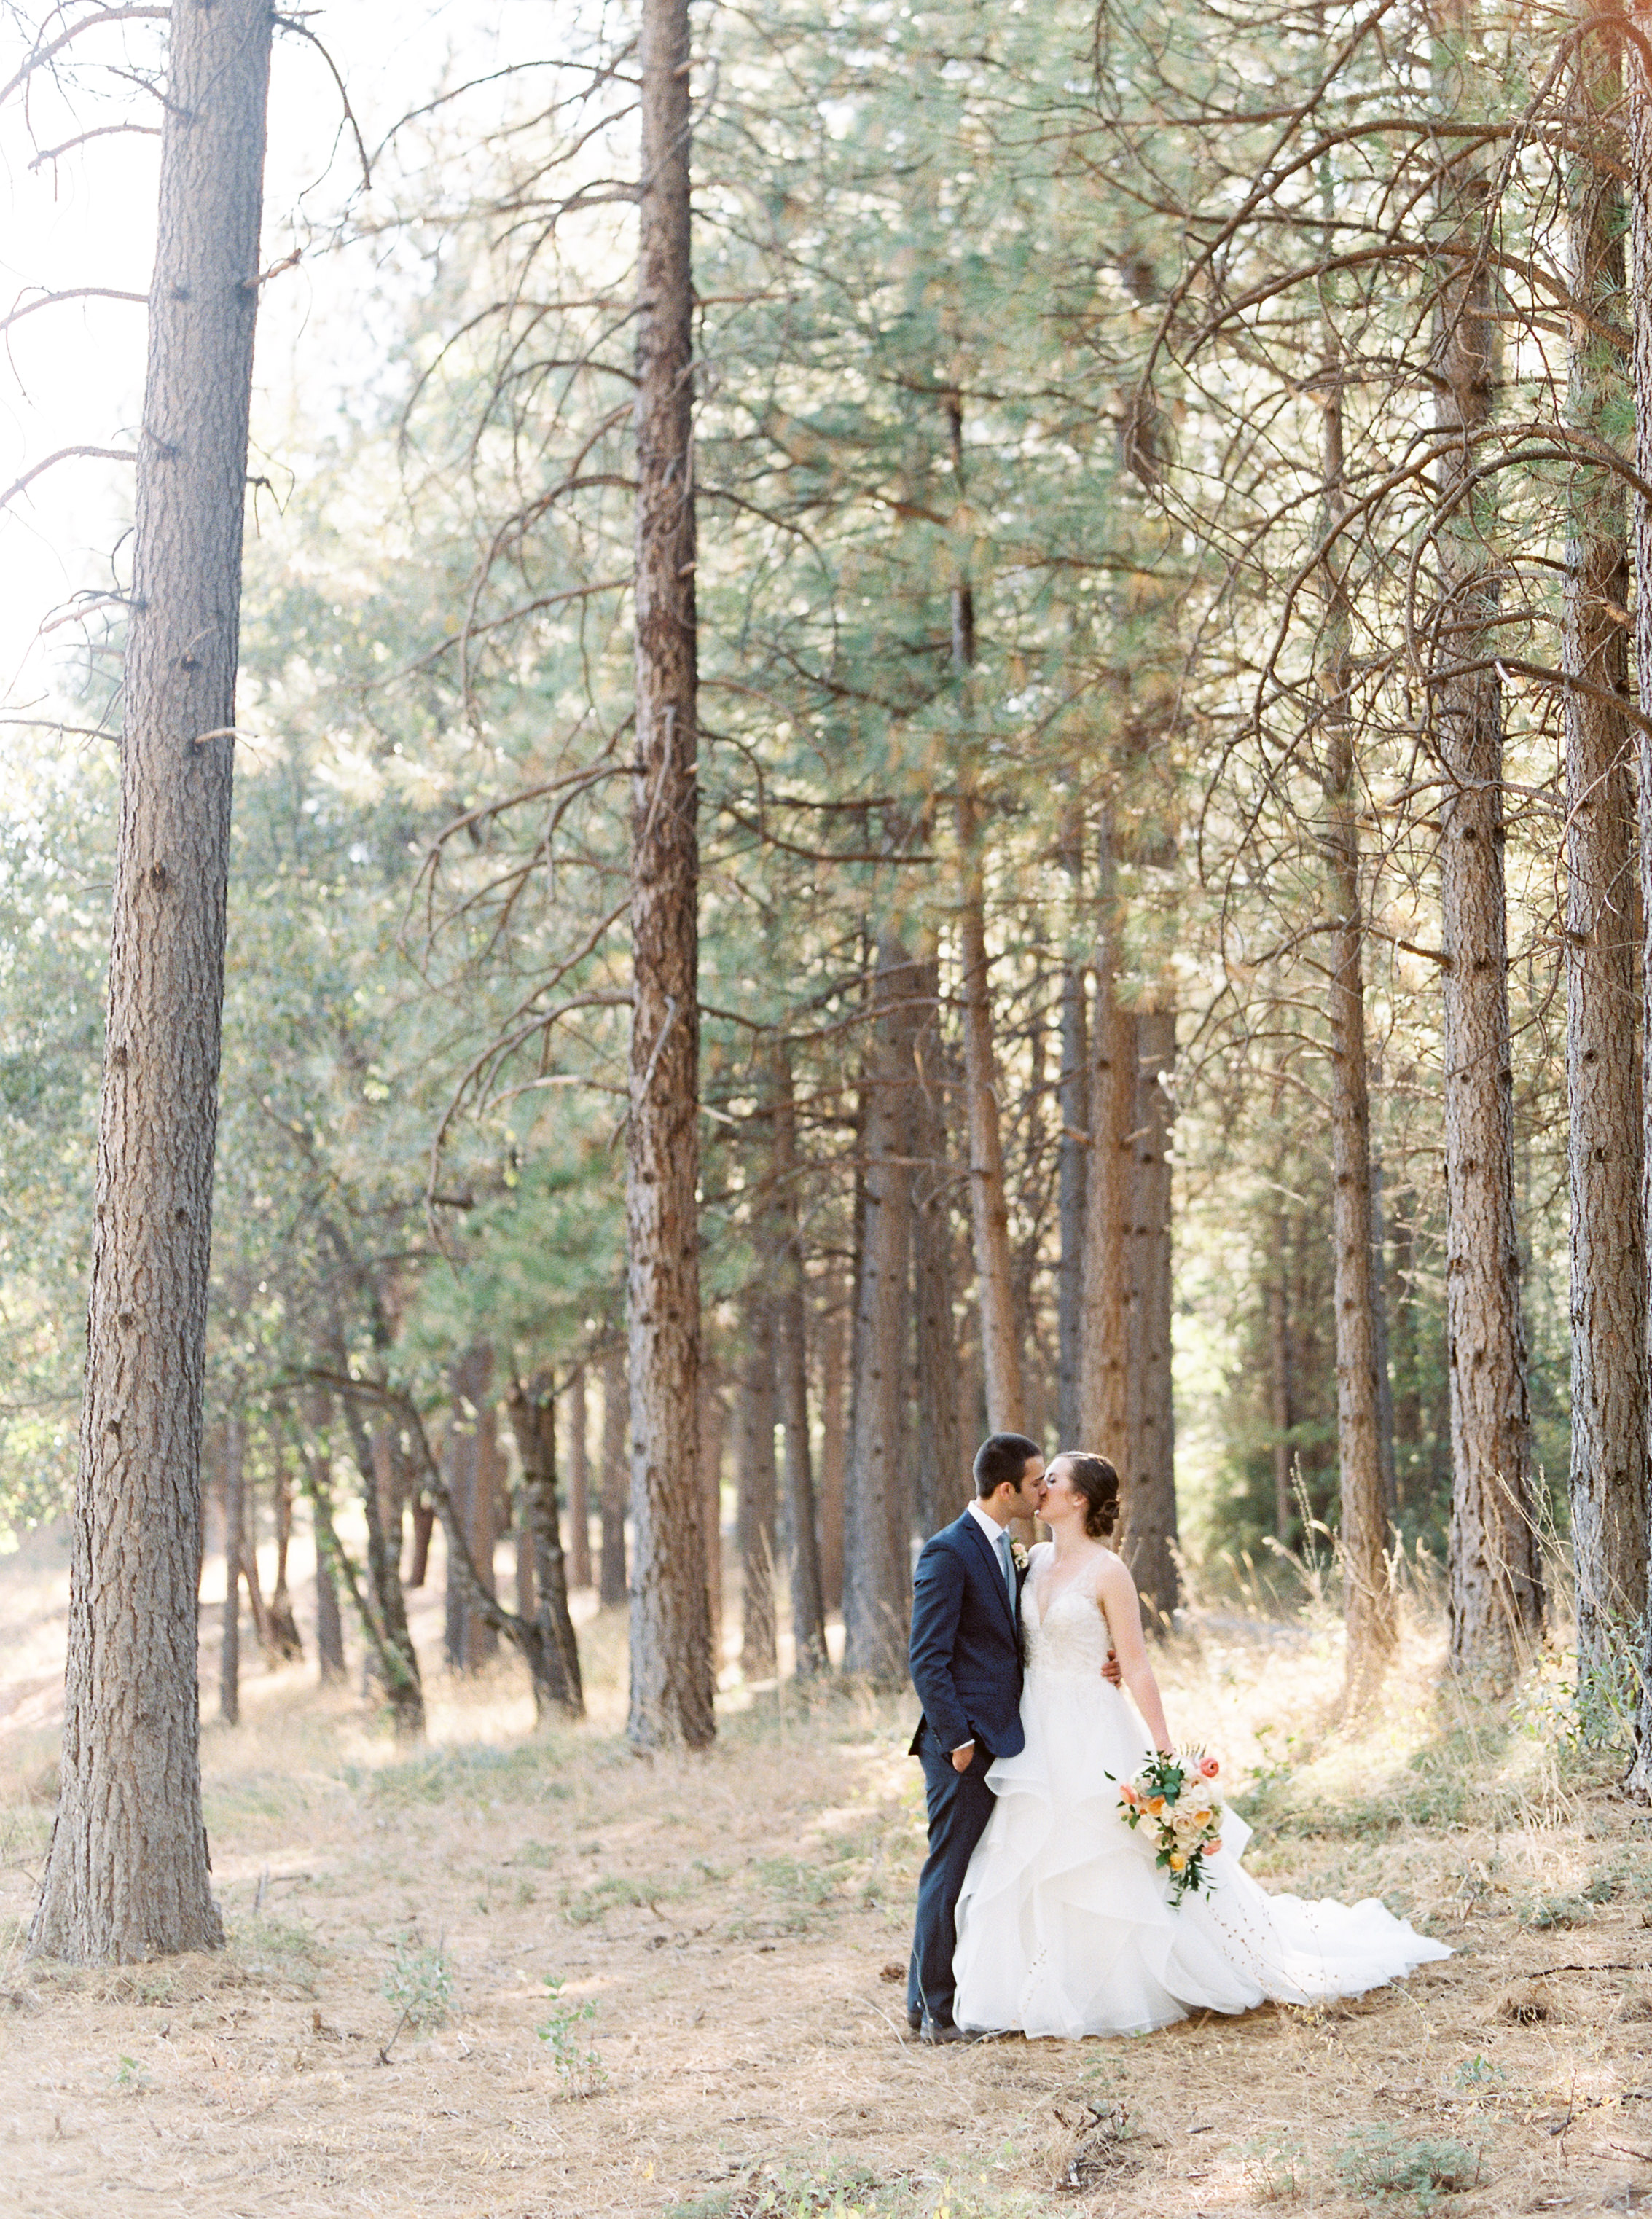 Forest-house-lodge-wedding-foresthill-california-60.jpg